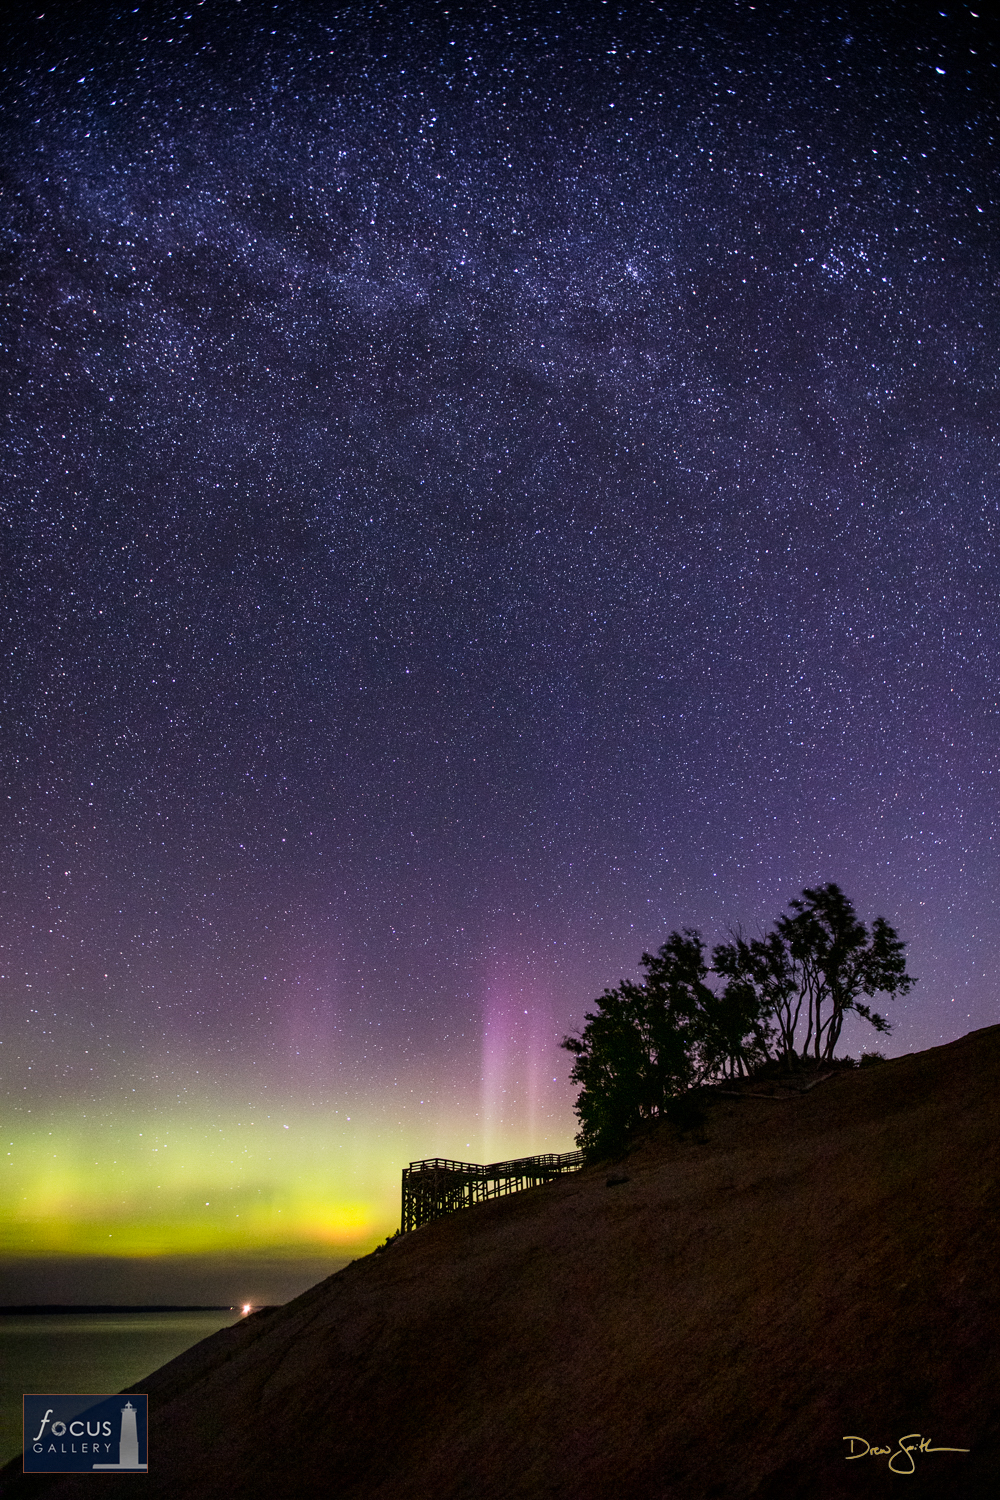 Photo © Drew Smith Pillars of light rise up into the starry night sky from the glow of aurora borealis over Sleeping Bear Dune...